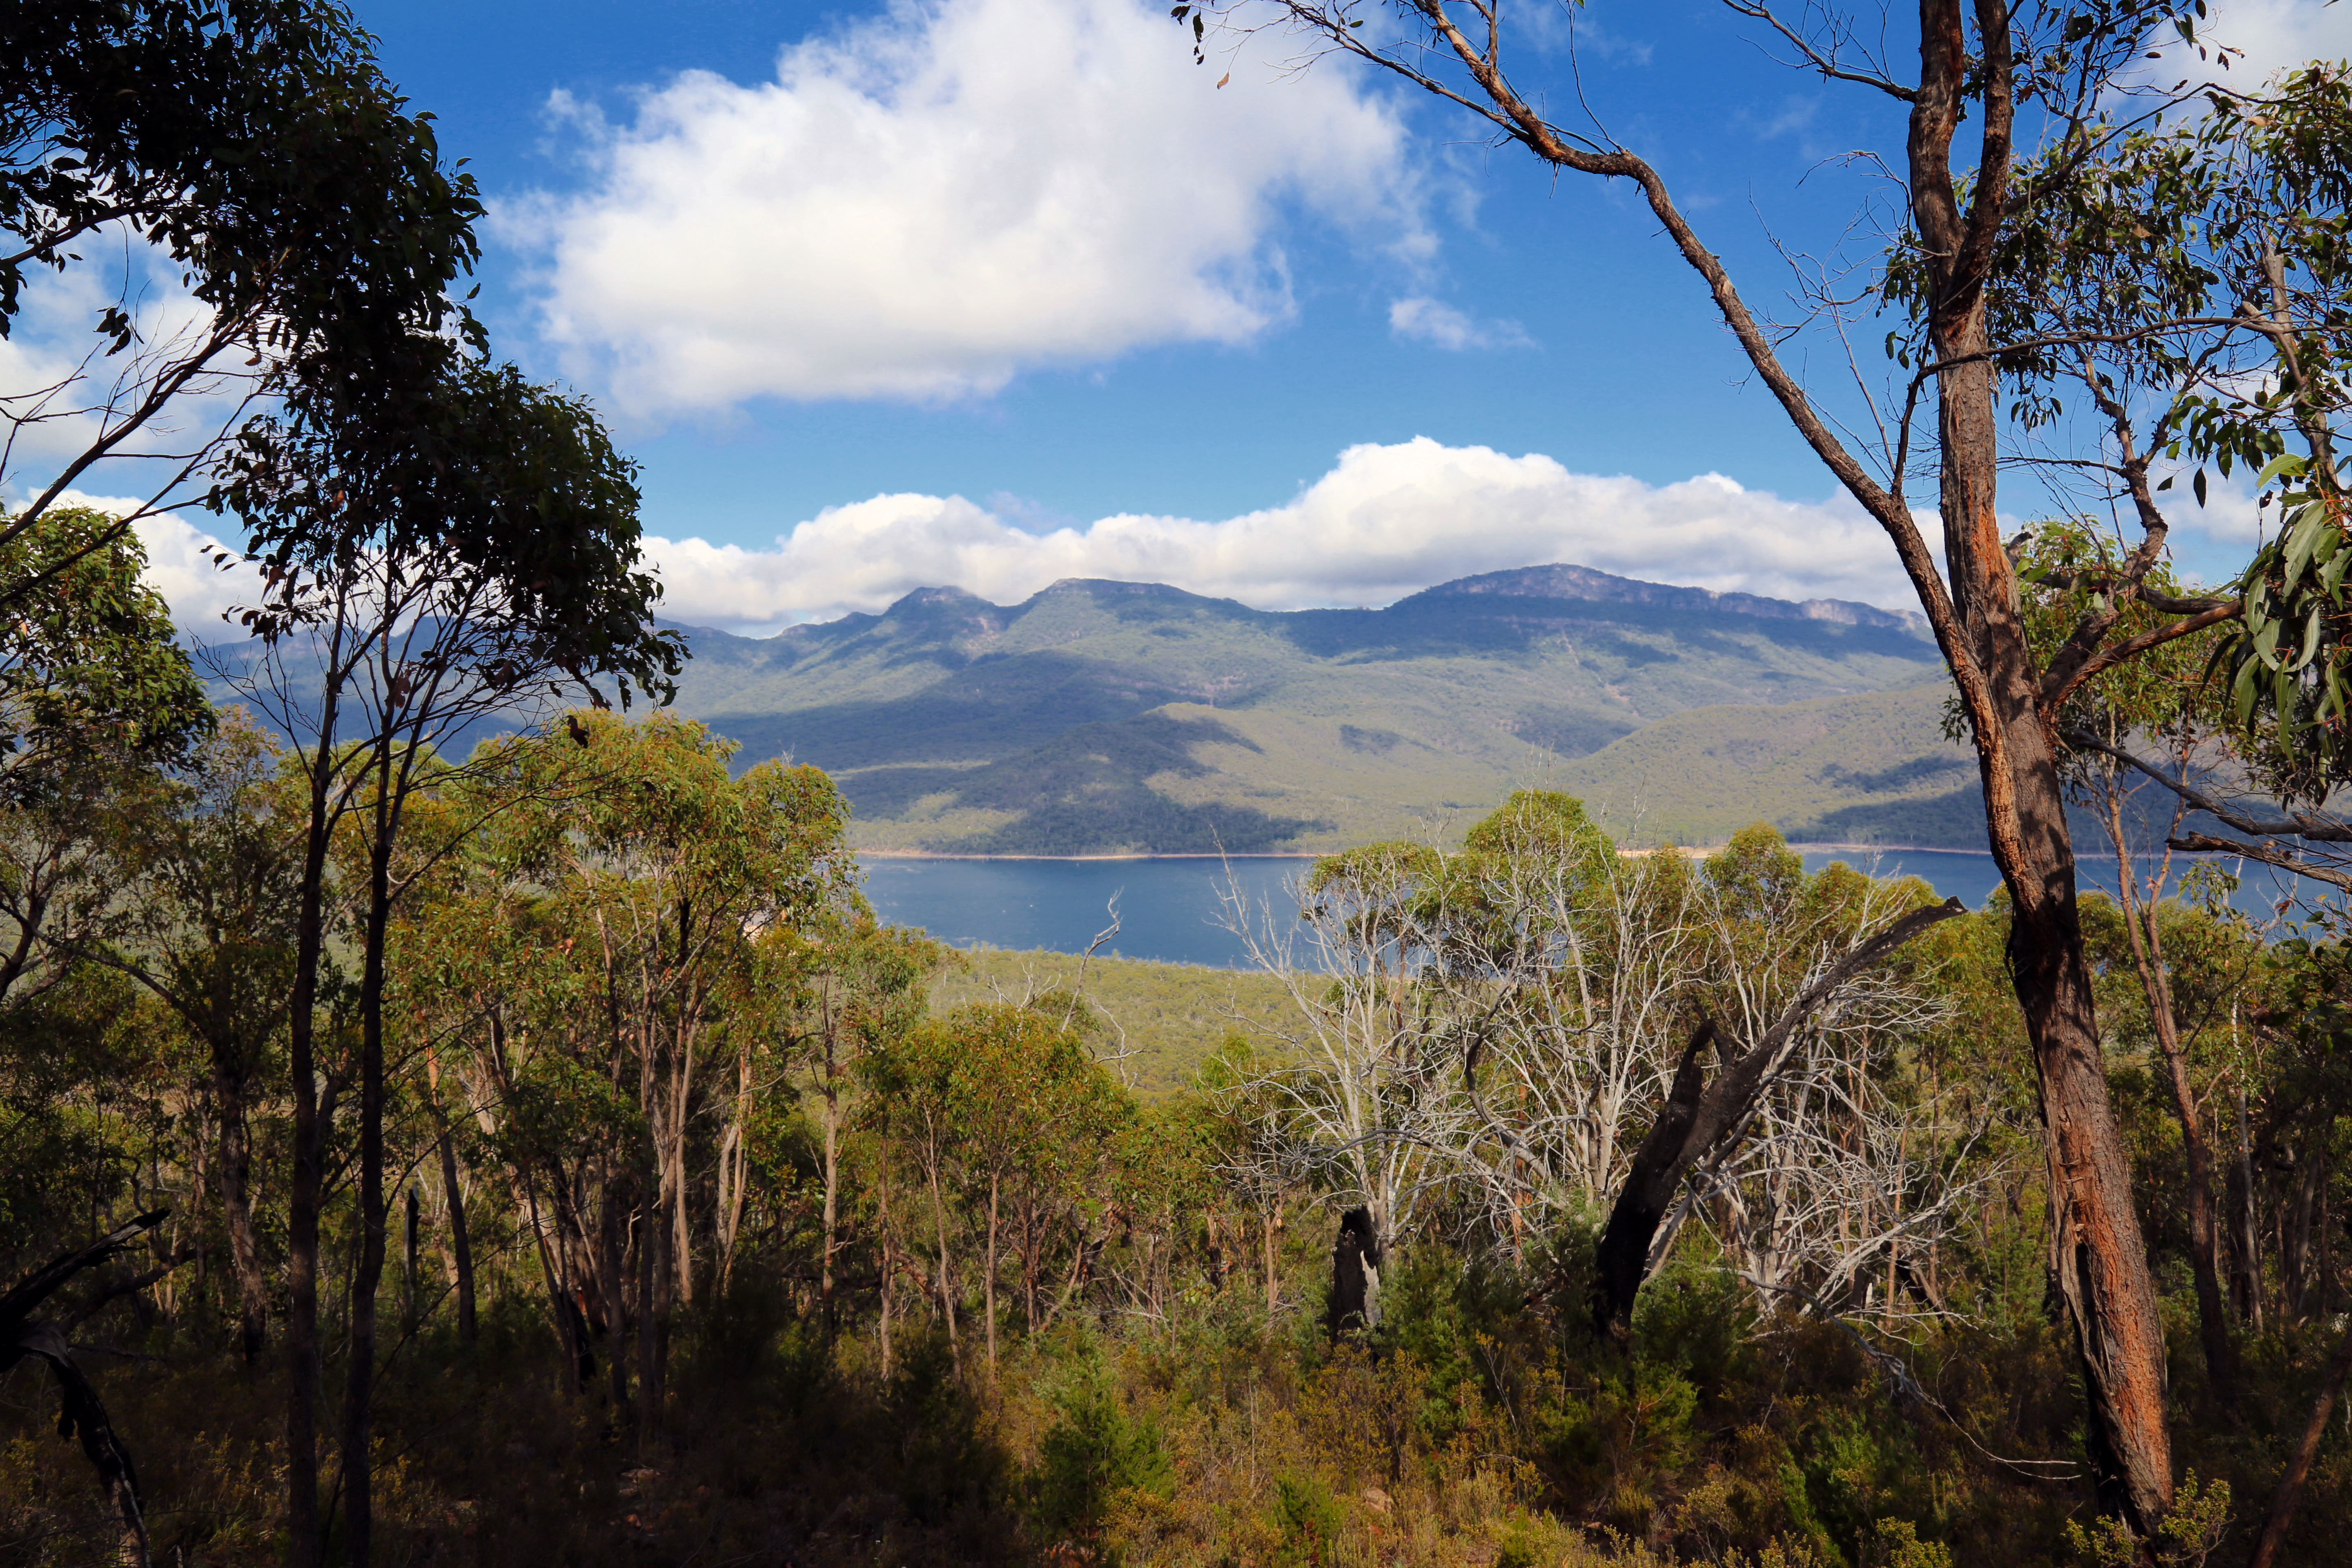 One of the spectacular views along the Tunnell Track walk from Pomonal to Halls Gap.